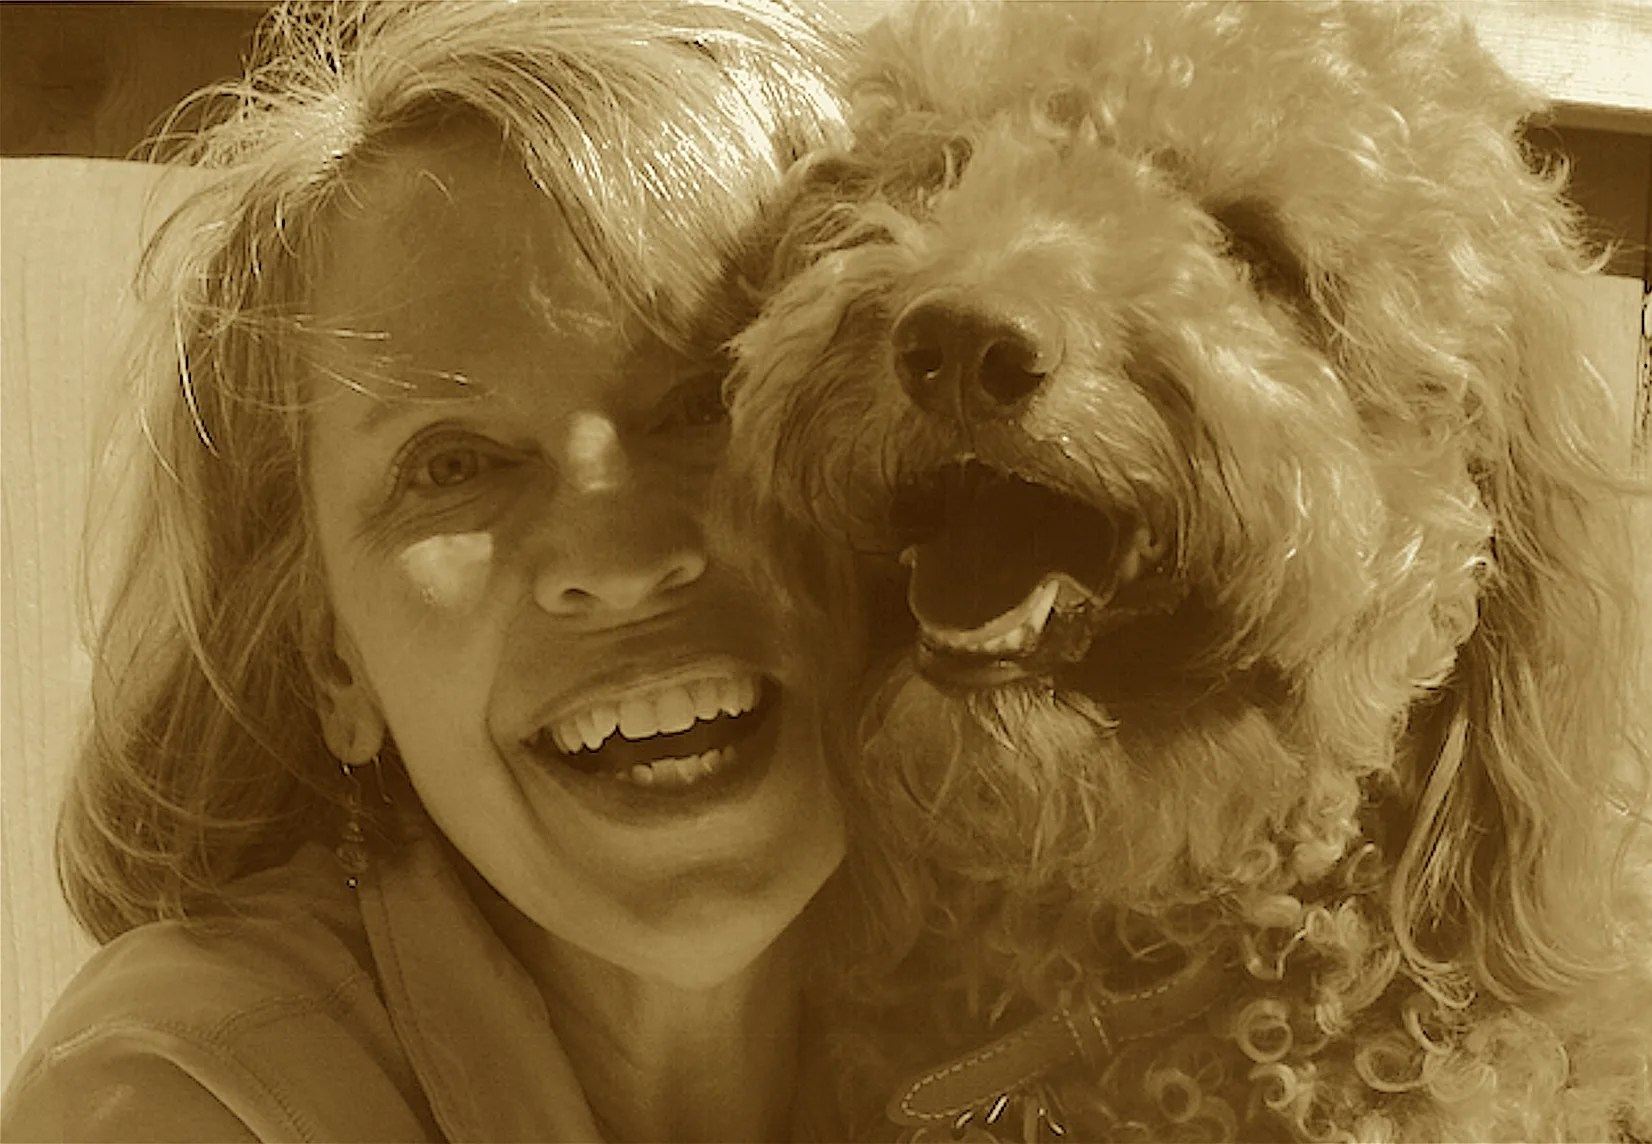 Goldendoodle dog and Goldendoodle mom smiling together. photo.